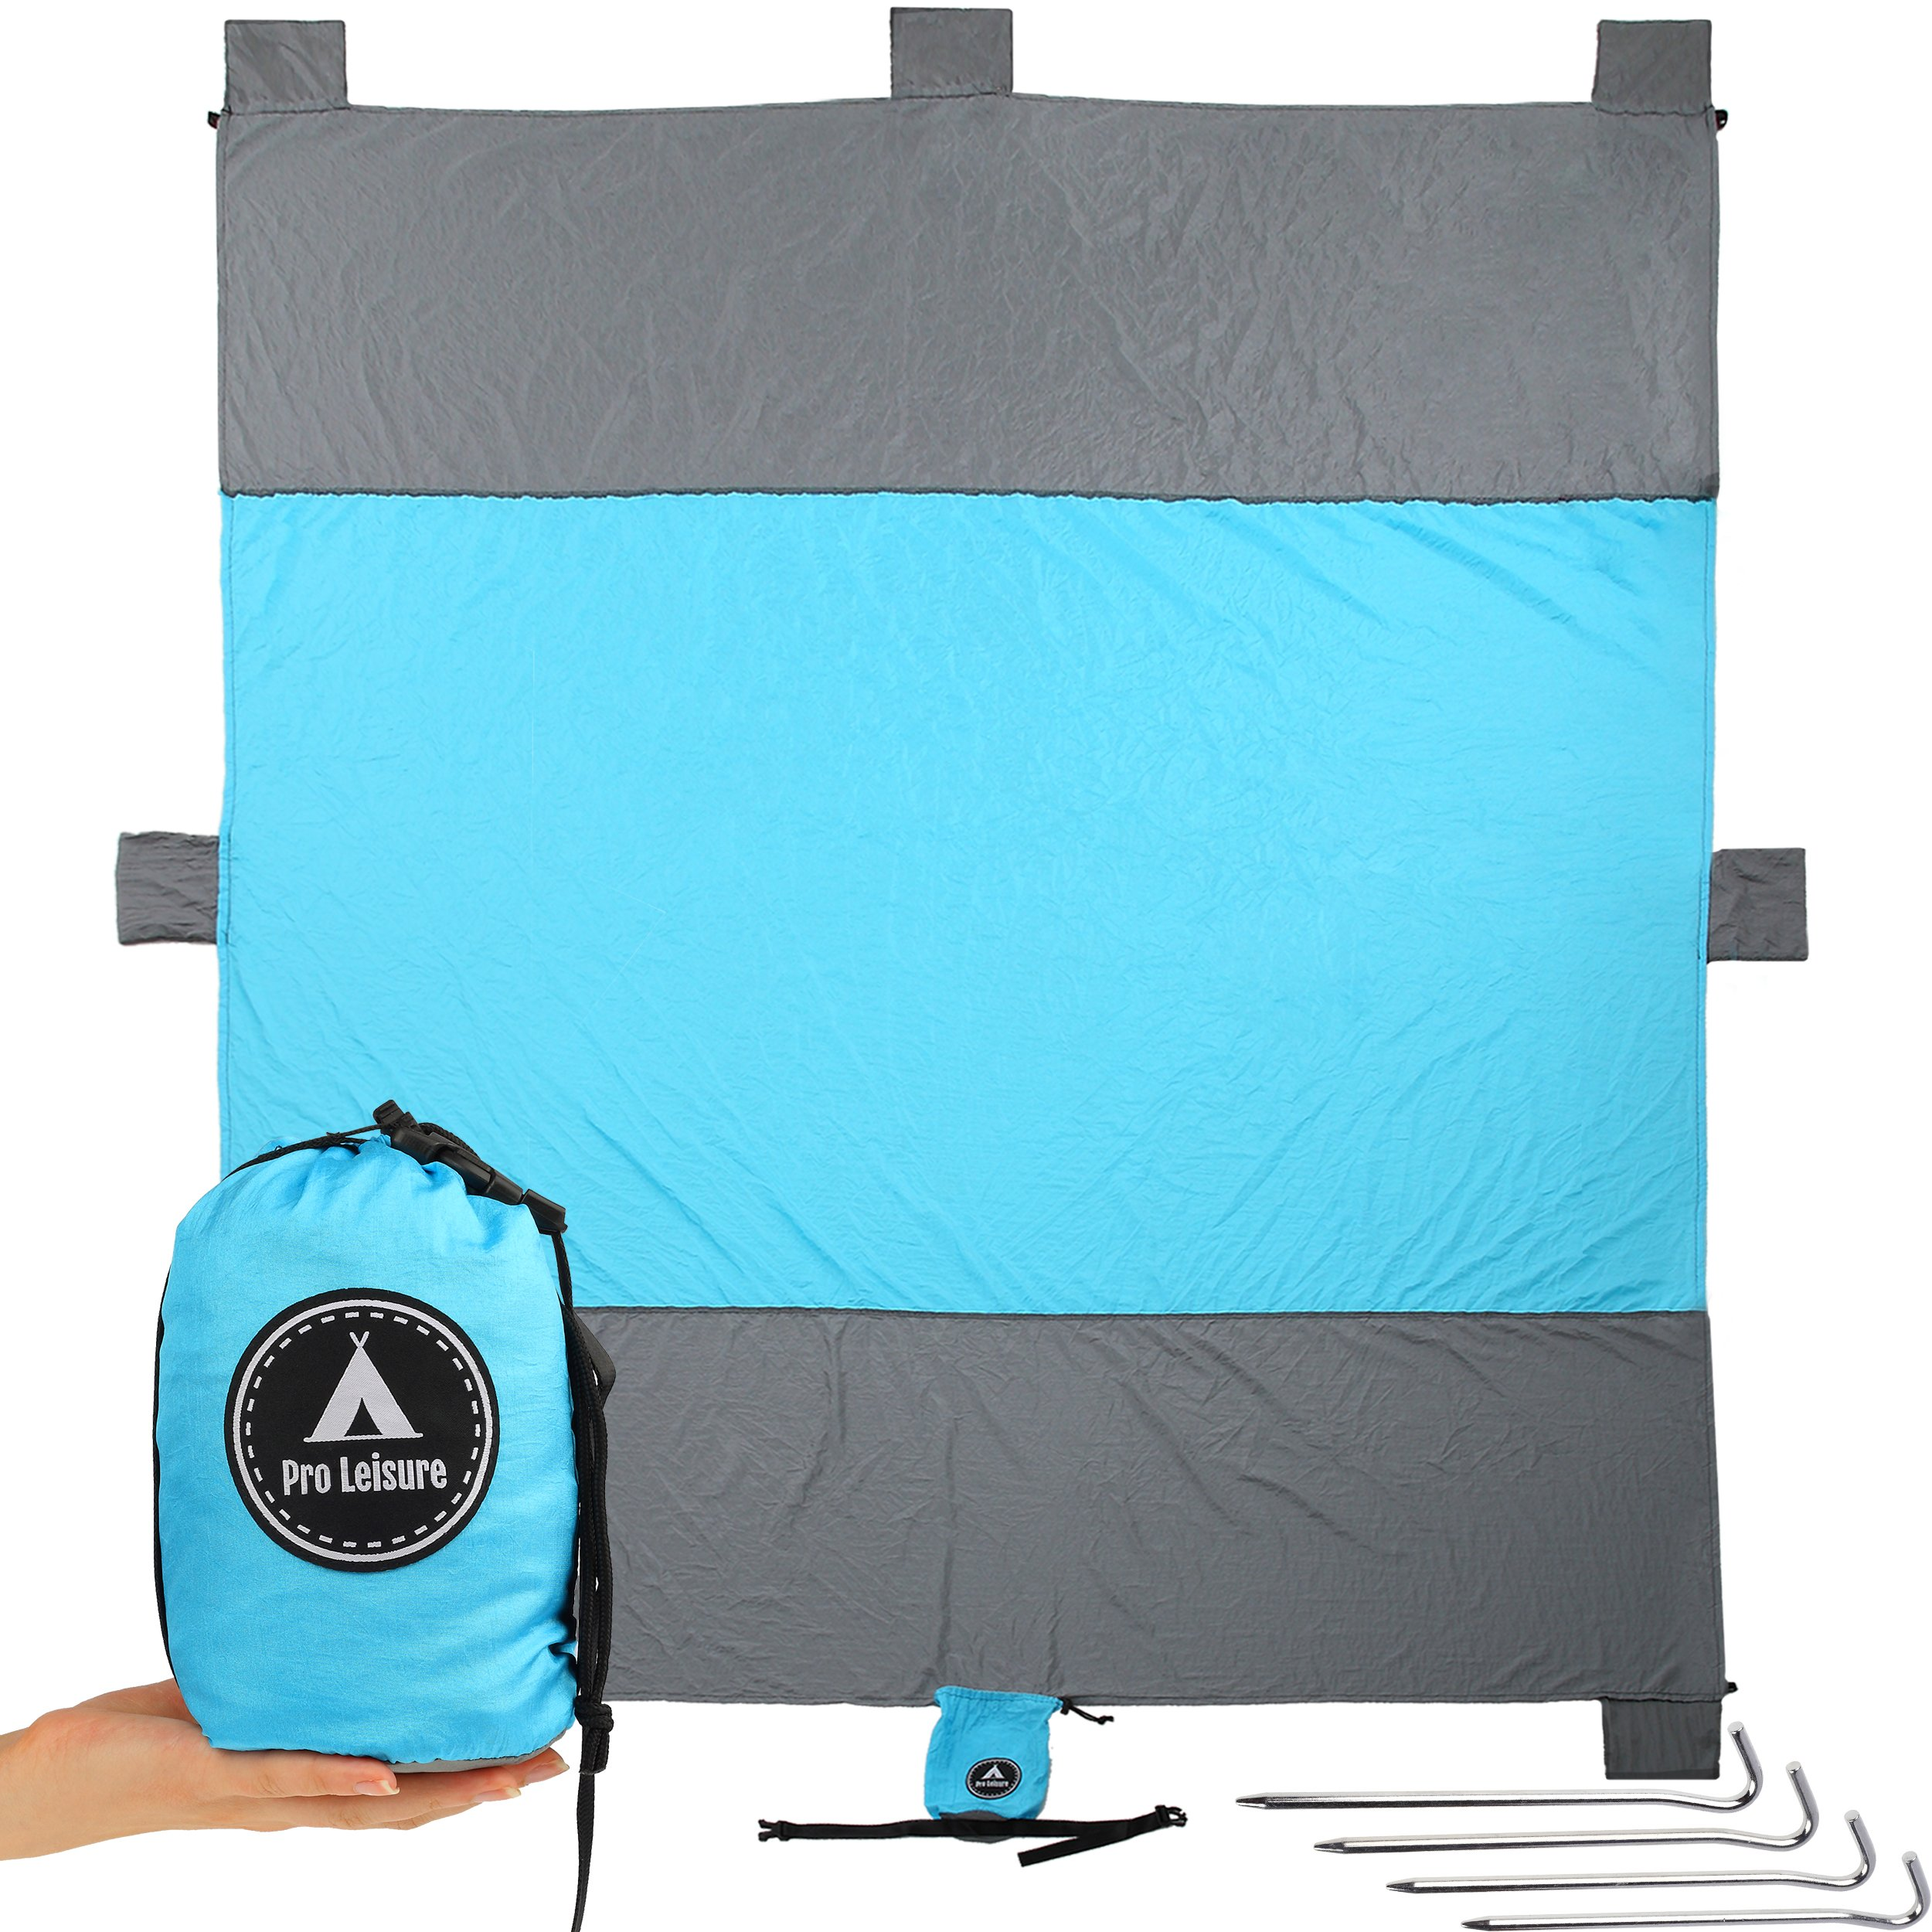 XL Large Beach Blanket - Picnic Blanket Waterproof Sand Sandproof Mat - Extra Large Beach Blanket - Big Sandless, Fast Dry Nylon,6 Pockets, 4 Metal Stakes. for Whole Family or Children's Game